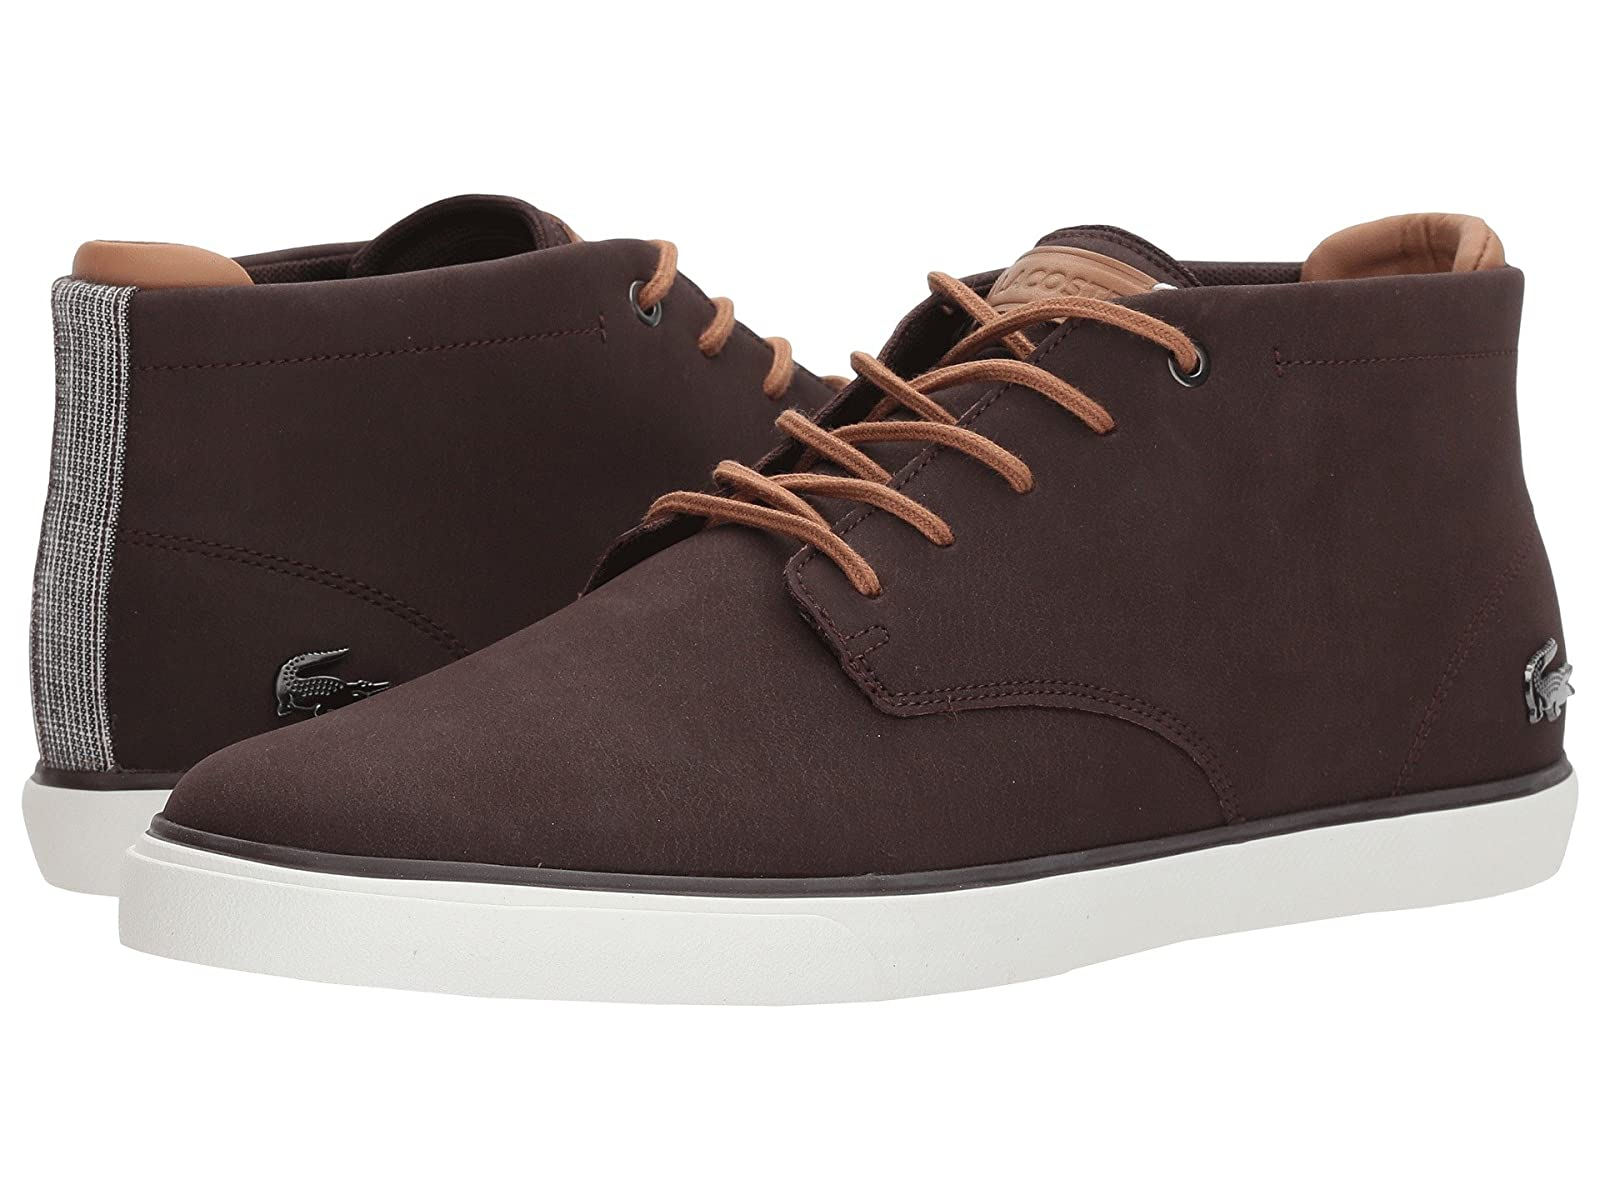 Lacoste Esparre Chukka 118 1Atmospheric grades have affordable shoes